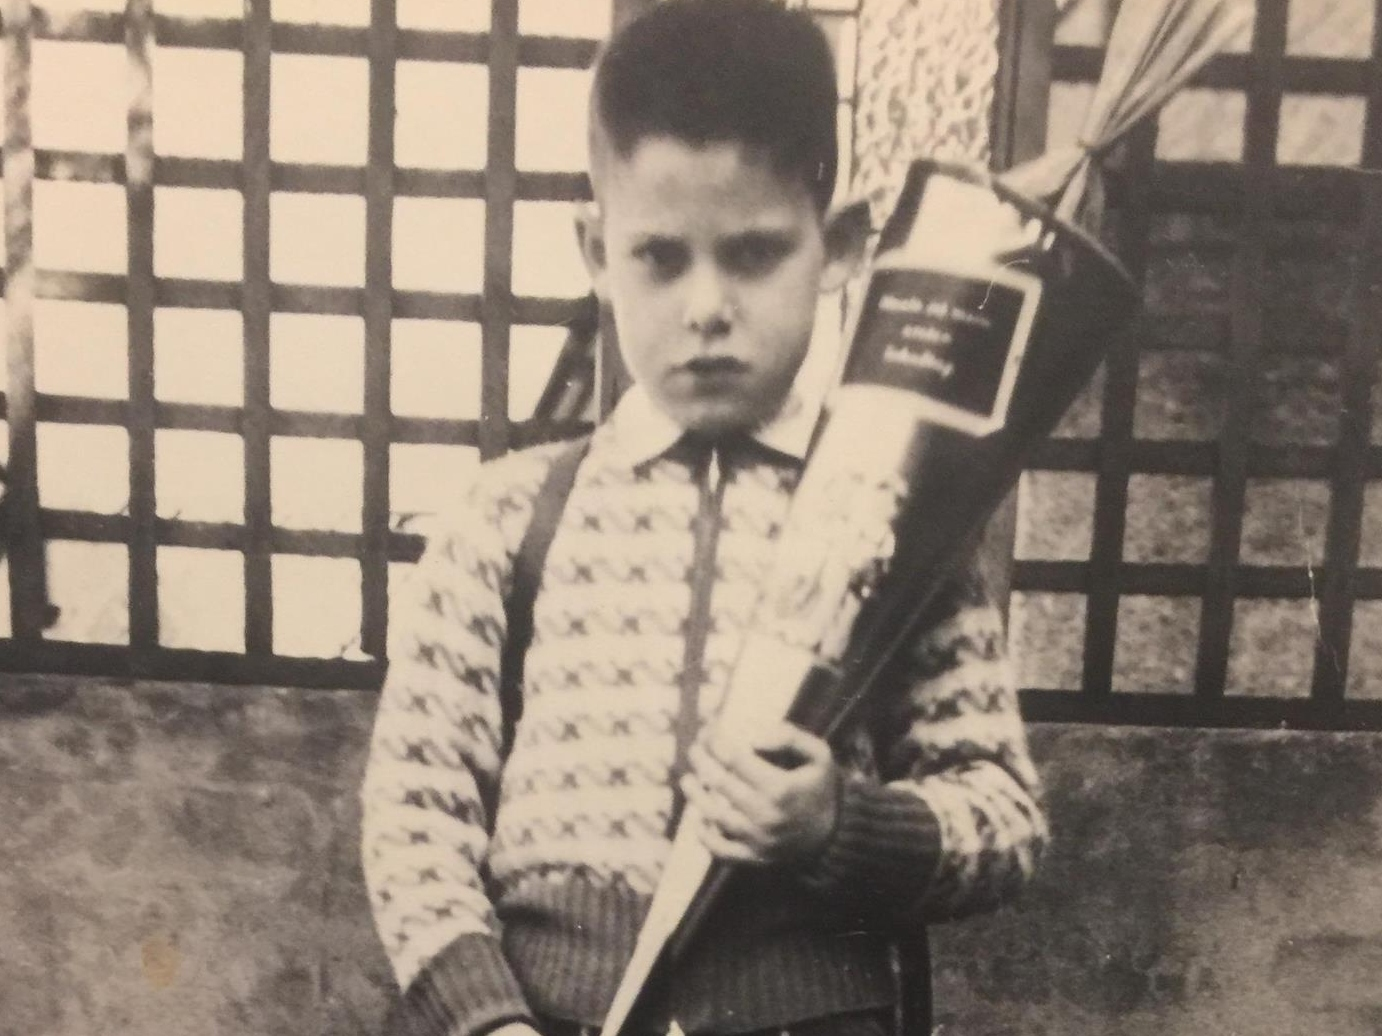 Bernard Krieger as a child in Trier, Germany on his first day of school. Some have noted that his deep, dark glare was apparent even in childhood. (Courtesy Misty Cherry)